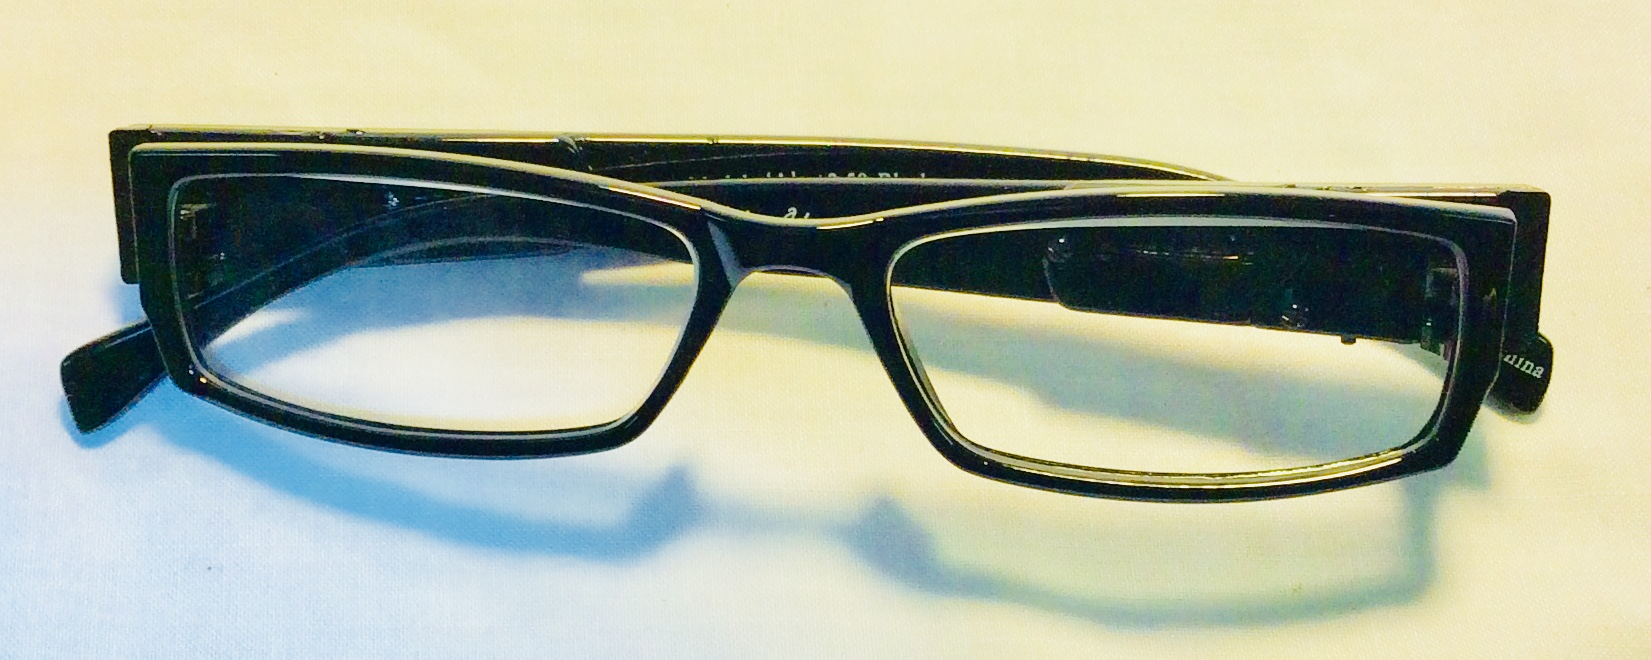 Dark Square rimmed eyeglasses